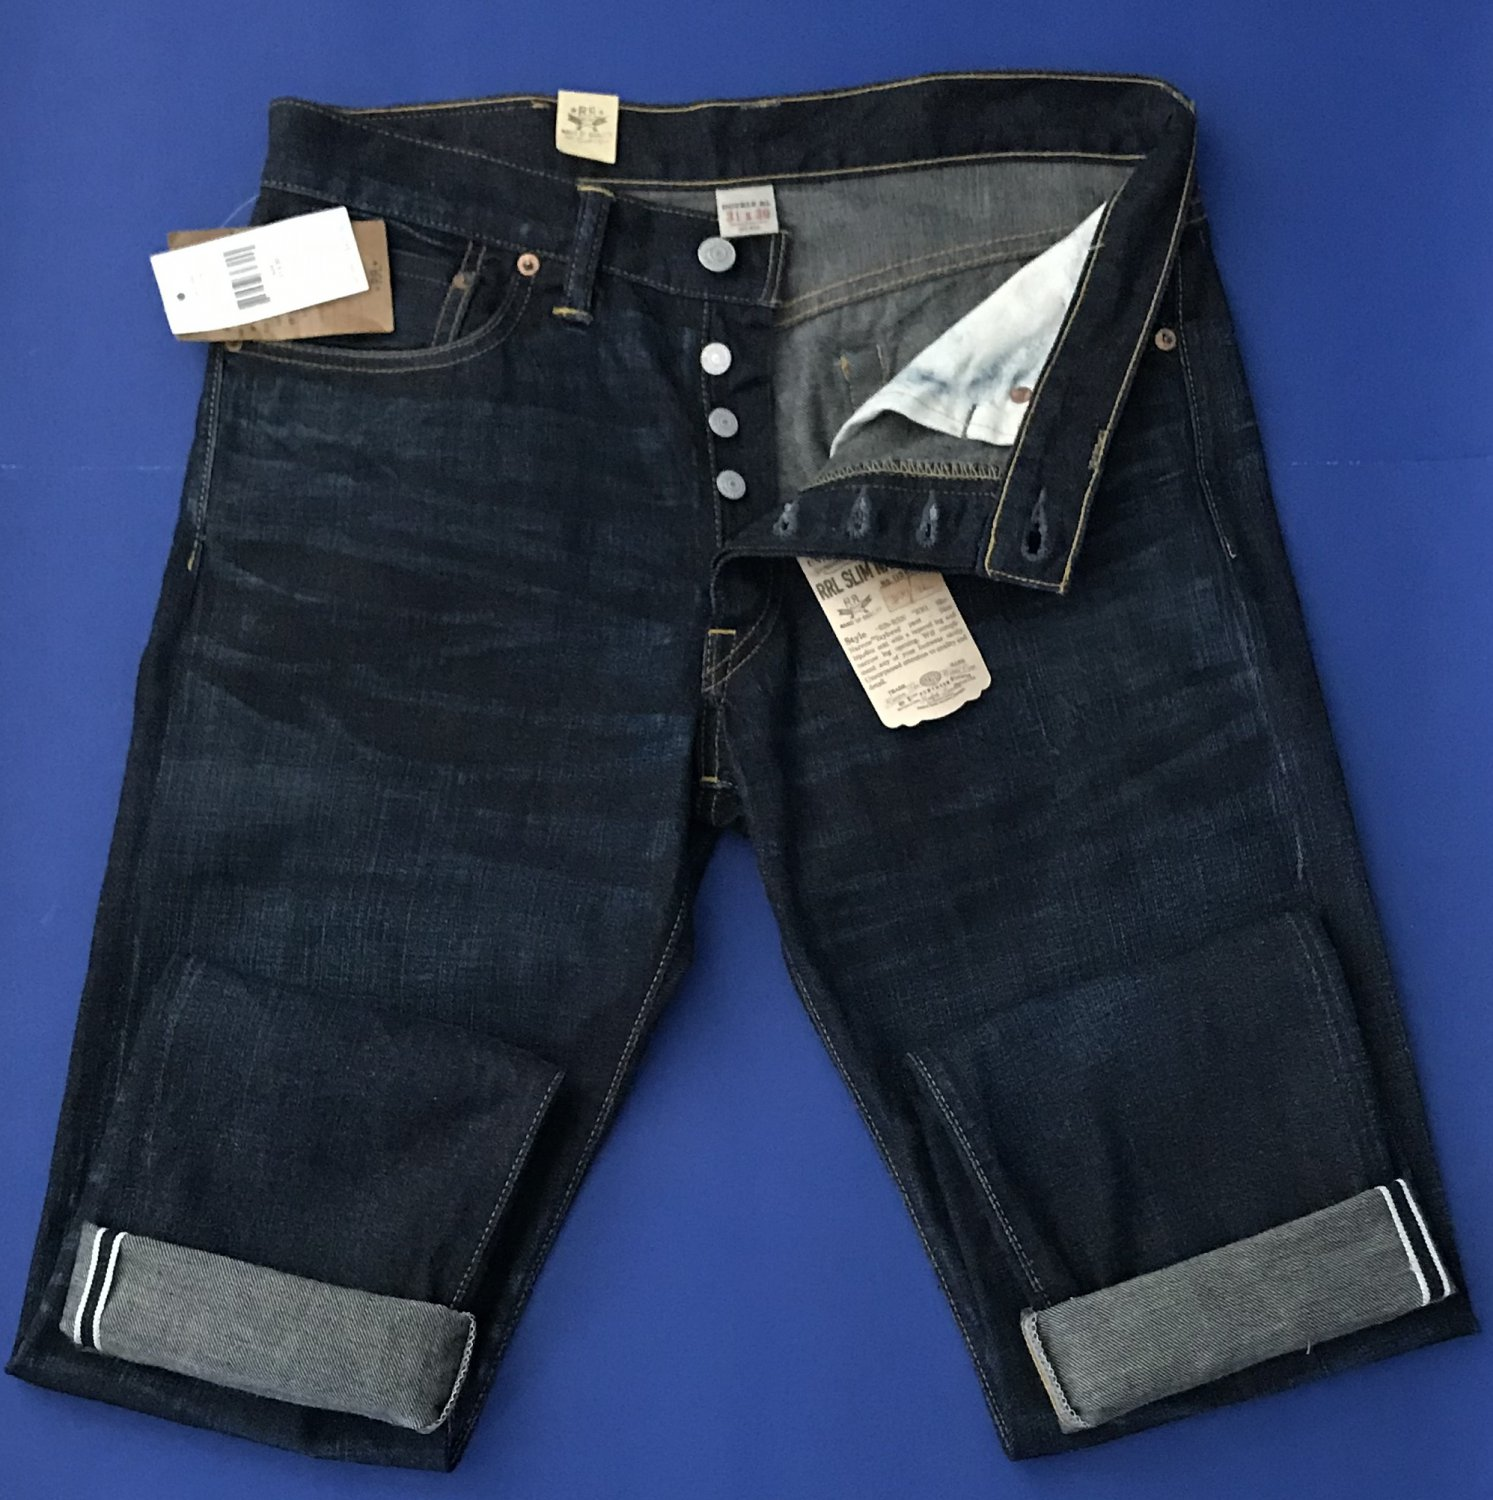 NWT Ralph Lauren Double RL RRL Slim Narrow Dark Wash Selvedge Jeans - 31x30